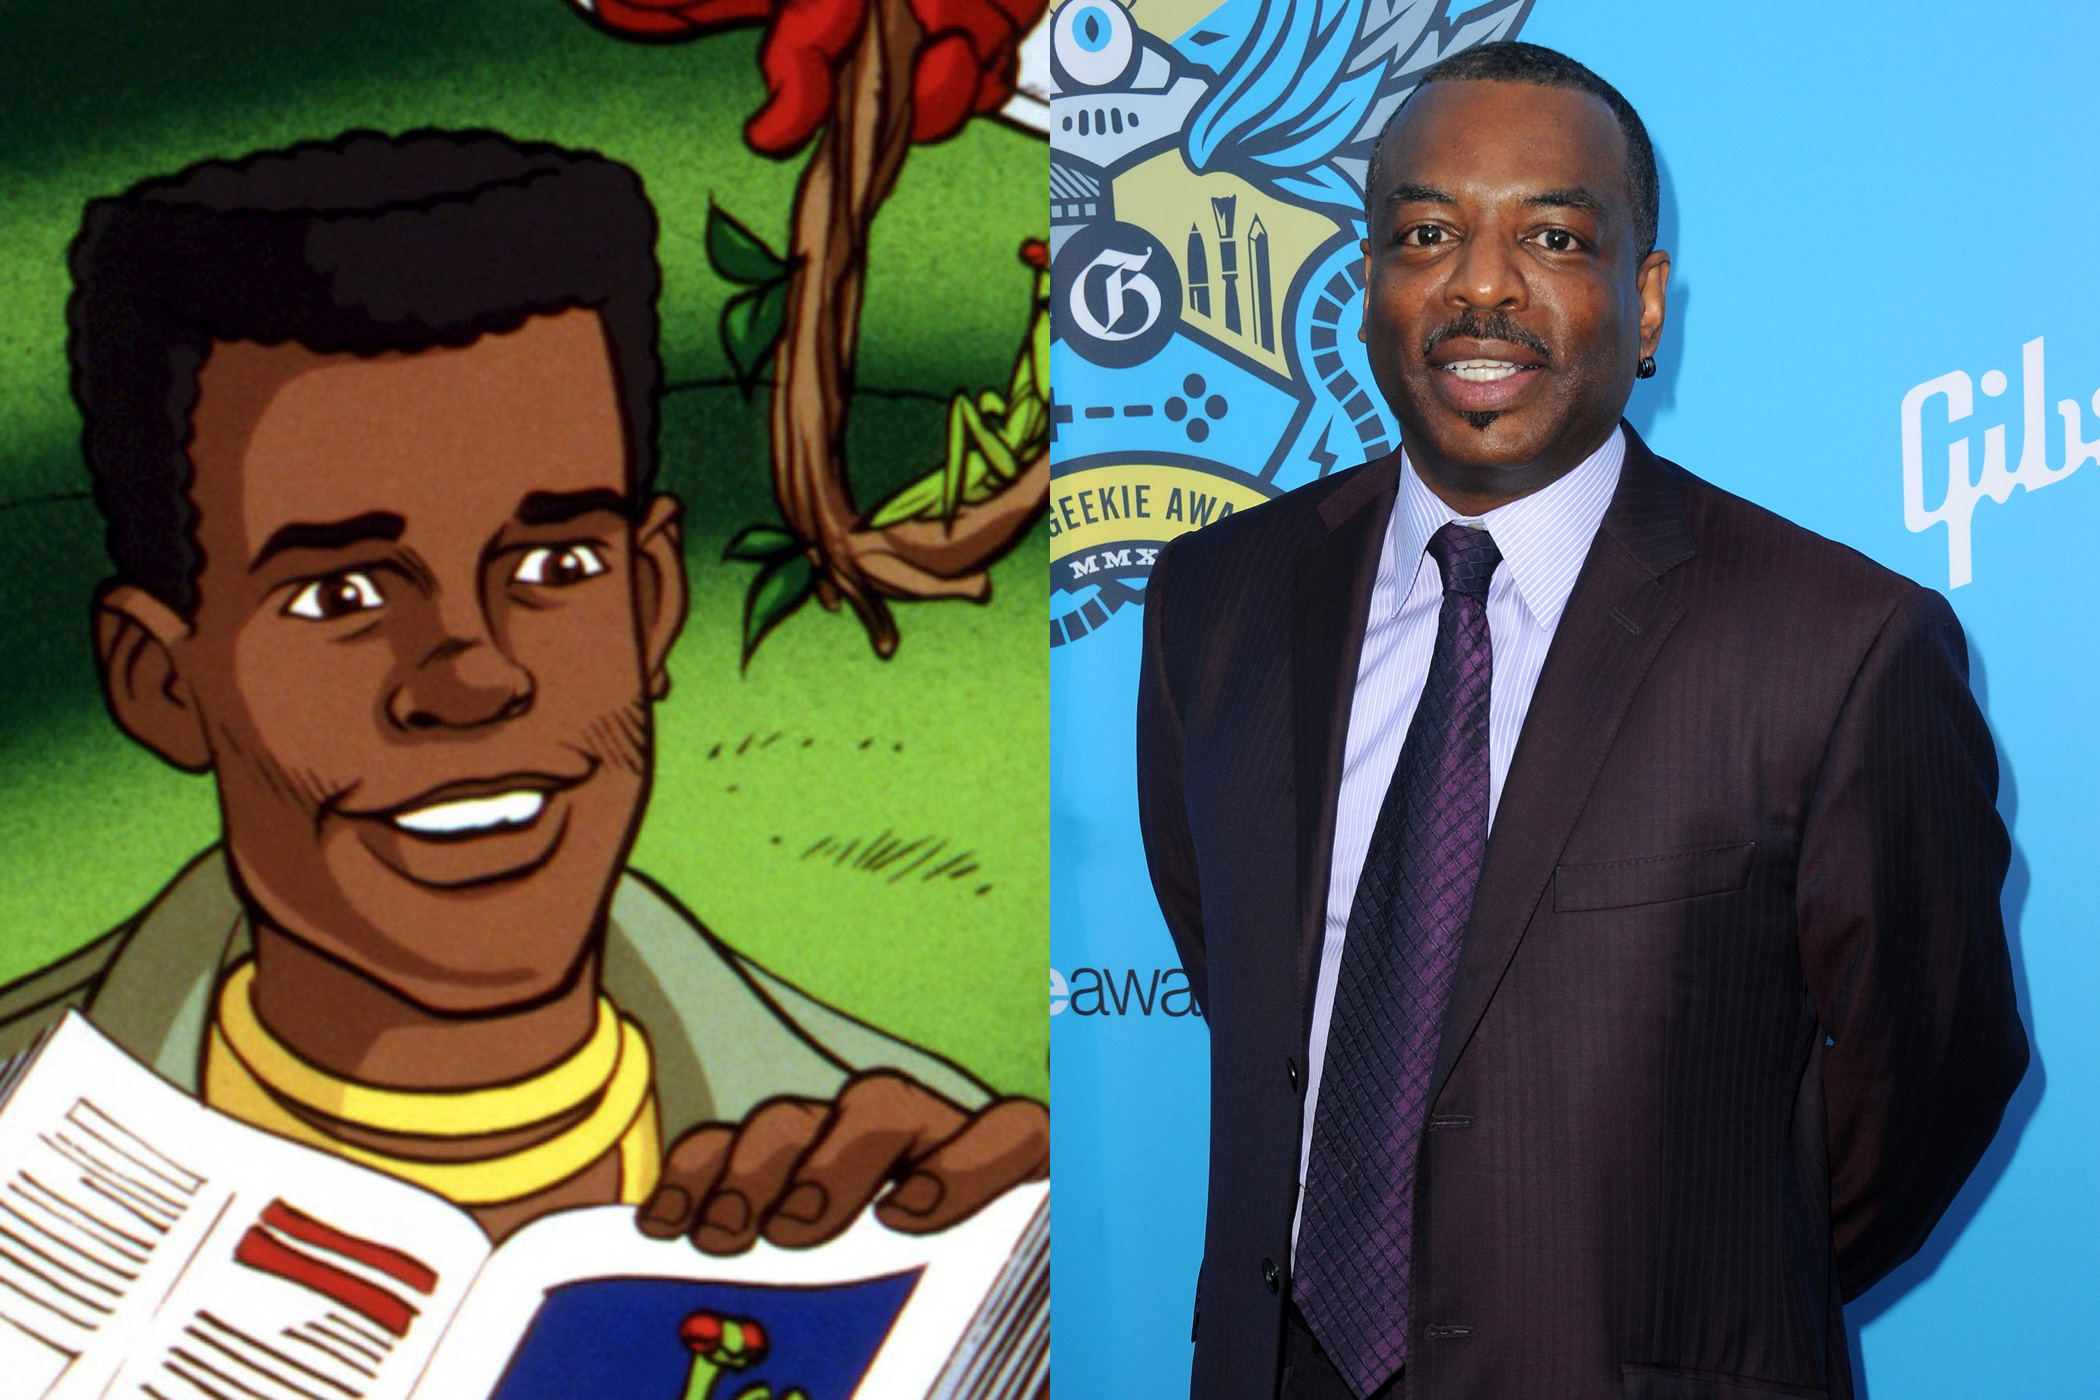 As if being on <i>Star Trek: The Next Generation</i> and <i>Reading Rainbow</i> weren't enough, LeVar Burton was also the voice of Kwame on <i>Captain Planet and the Planeteers</i>.